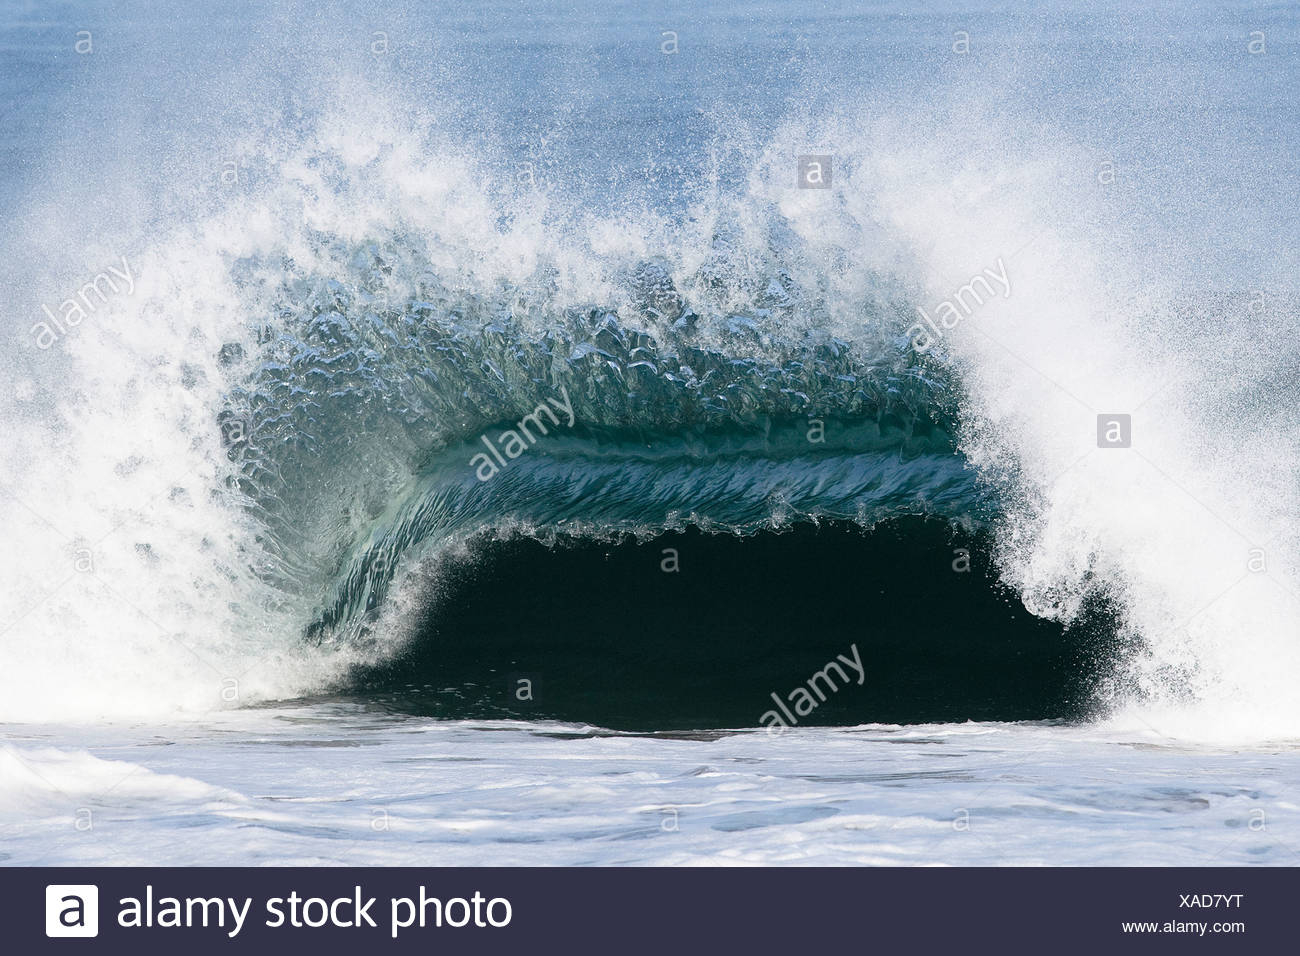 A large wave breaks with force over a shallow sandbar. - Stock Image